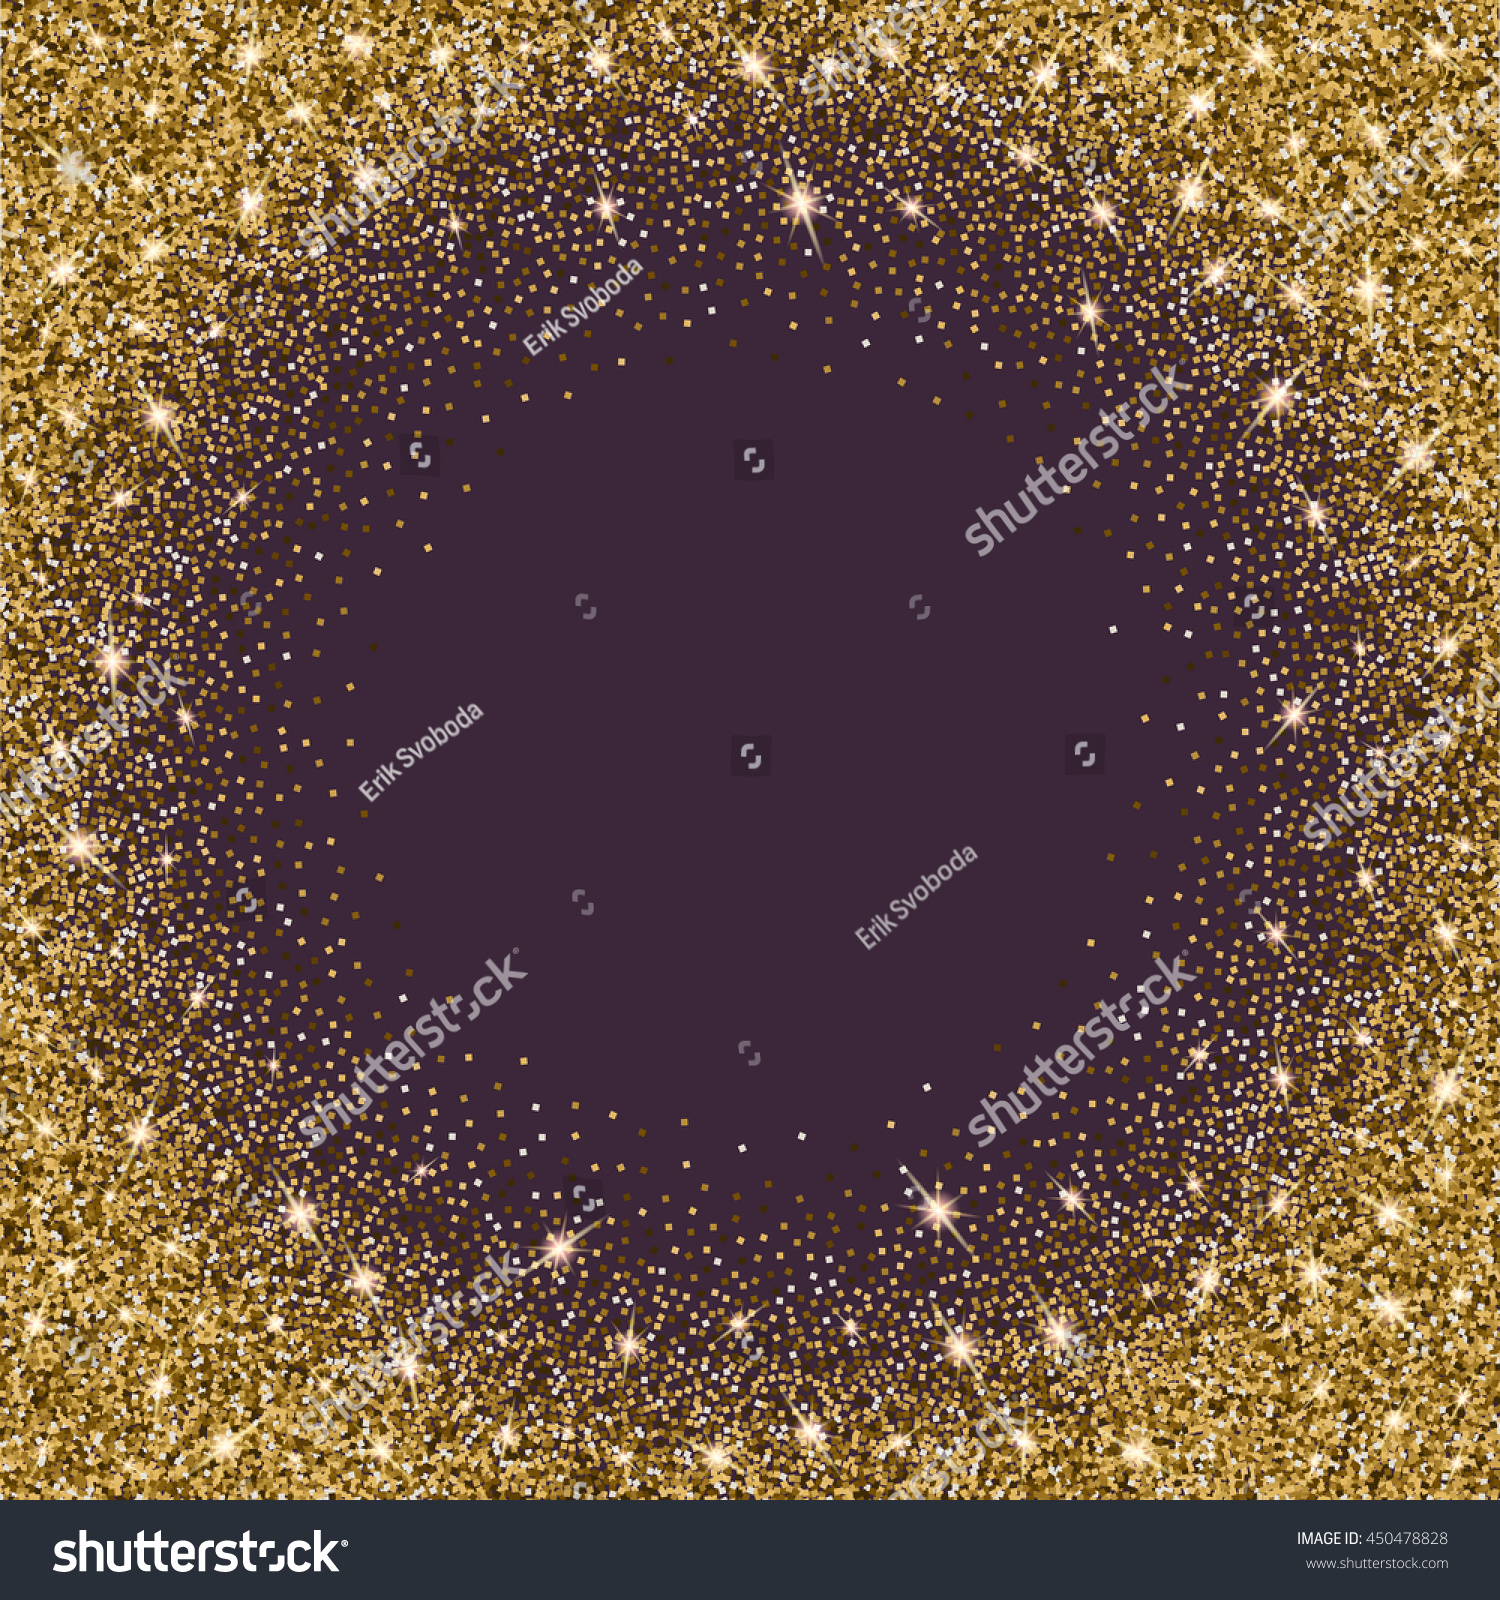 Gold glitter bright vector transparent background golden sparkles - Gold Glitter Bright Vector Background Golden Sparkles Shiny Texture Excellent For Your